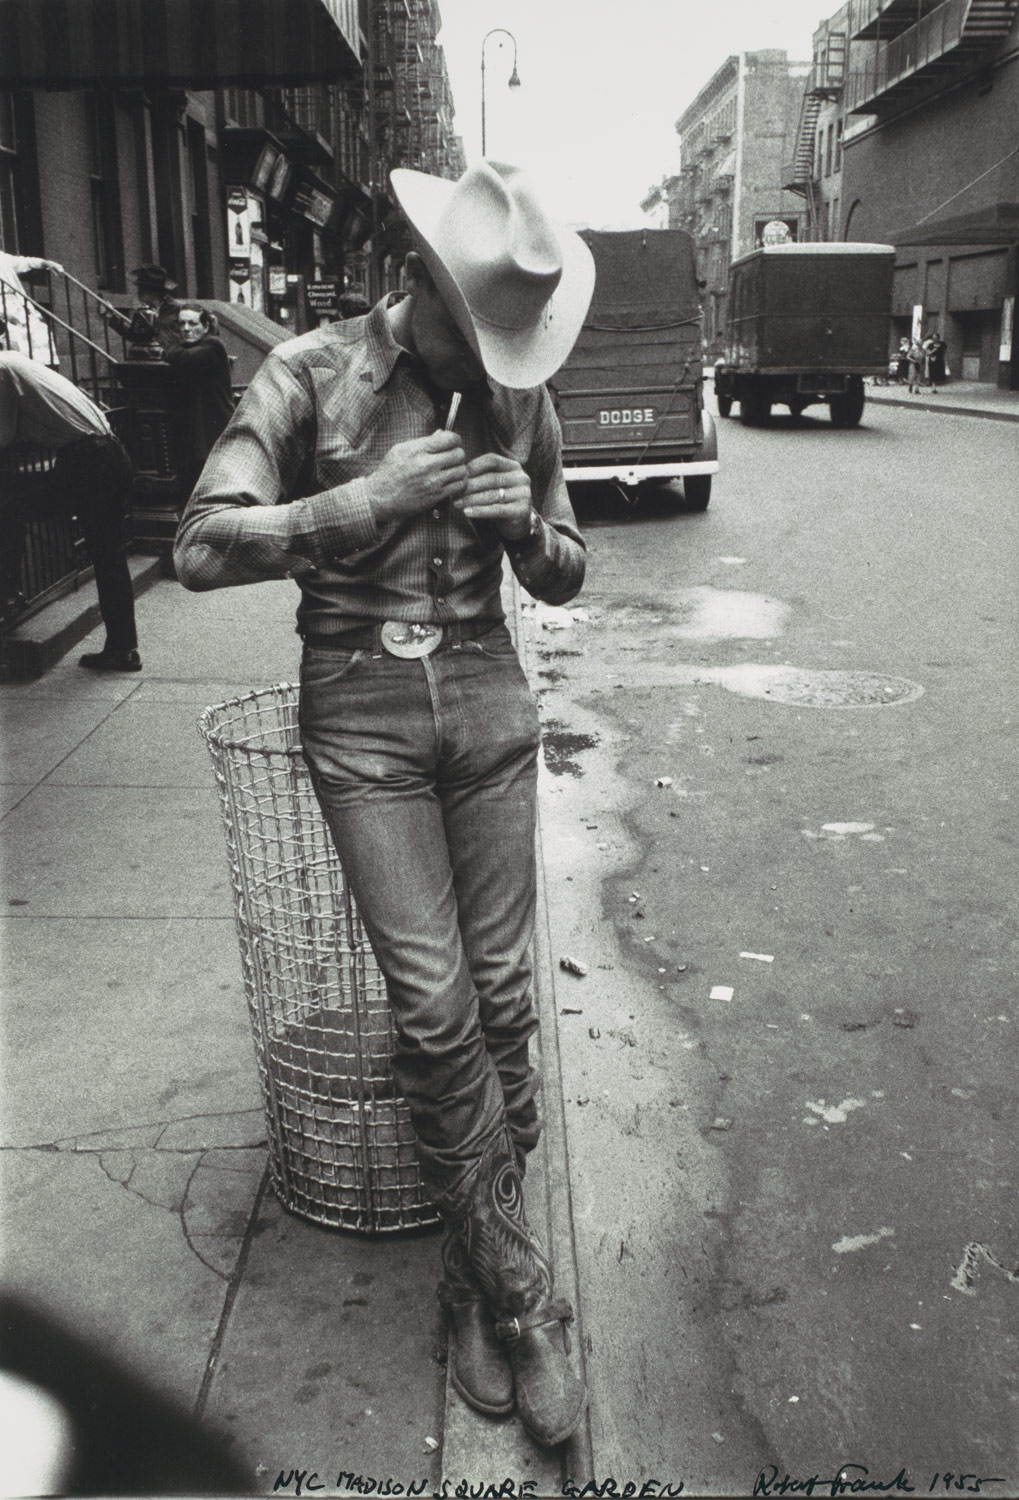 rodeo new york city robert frank 1992 5162 3 work of art rodeo new york city